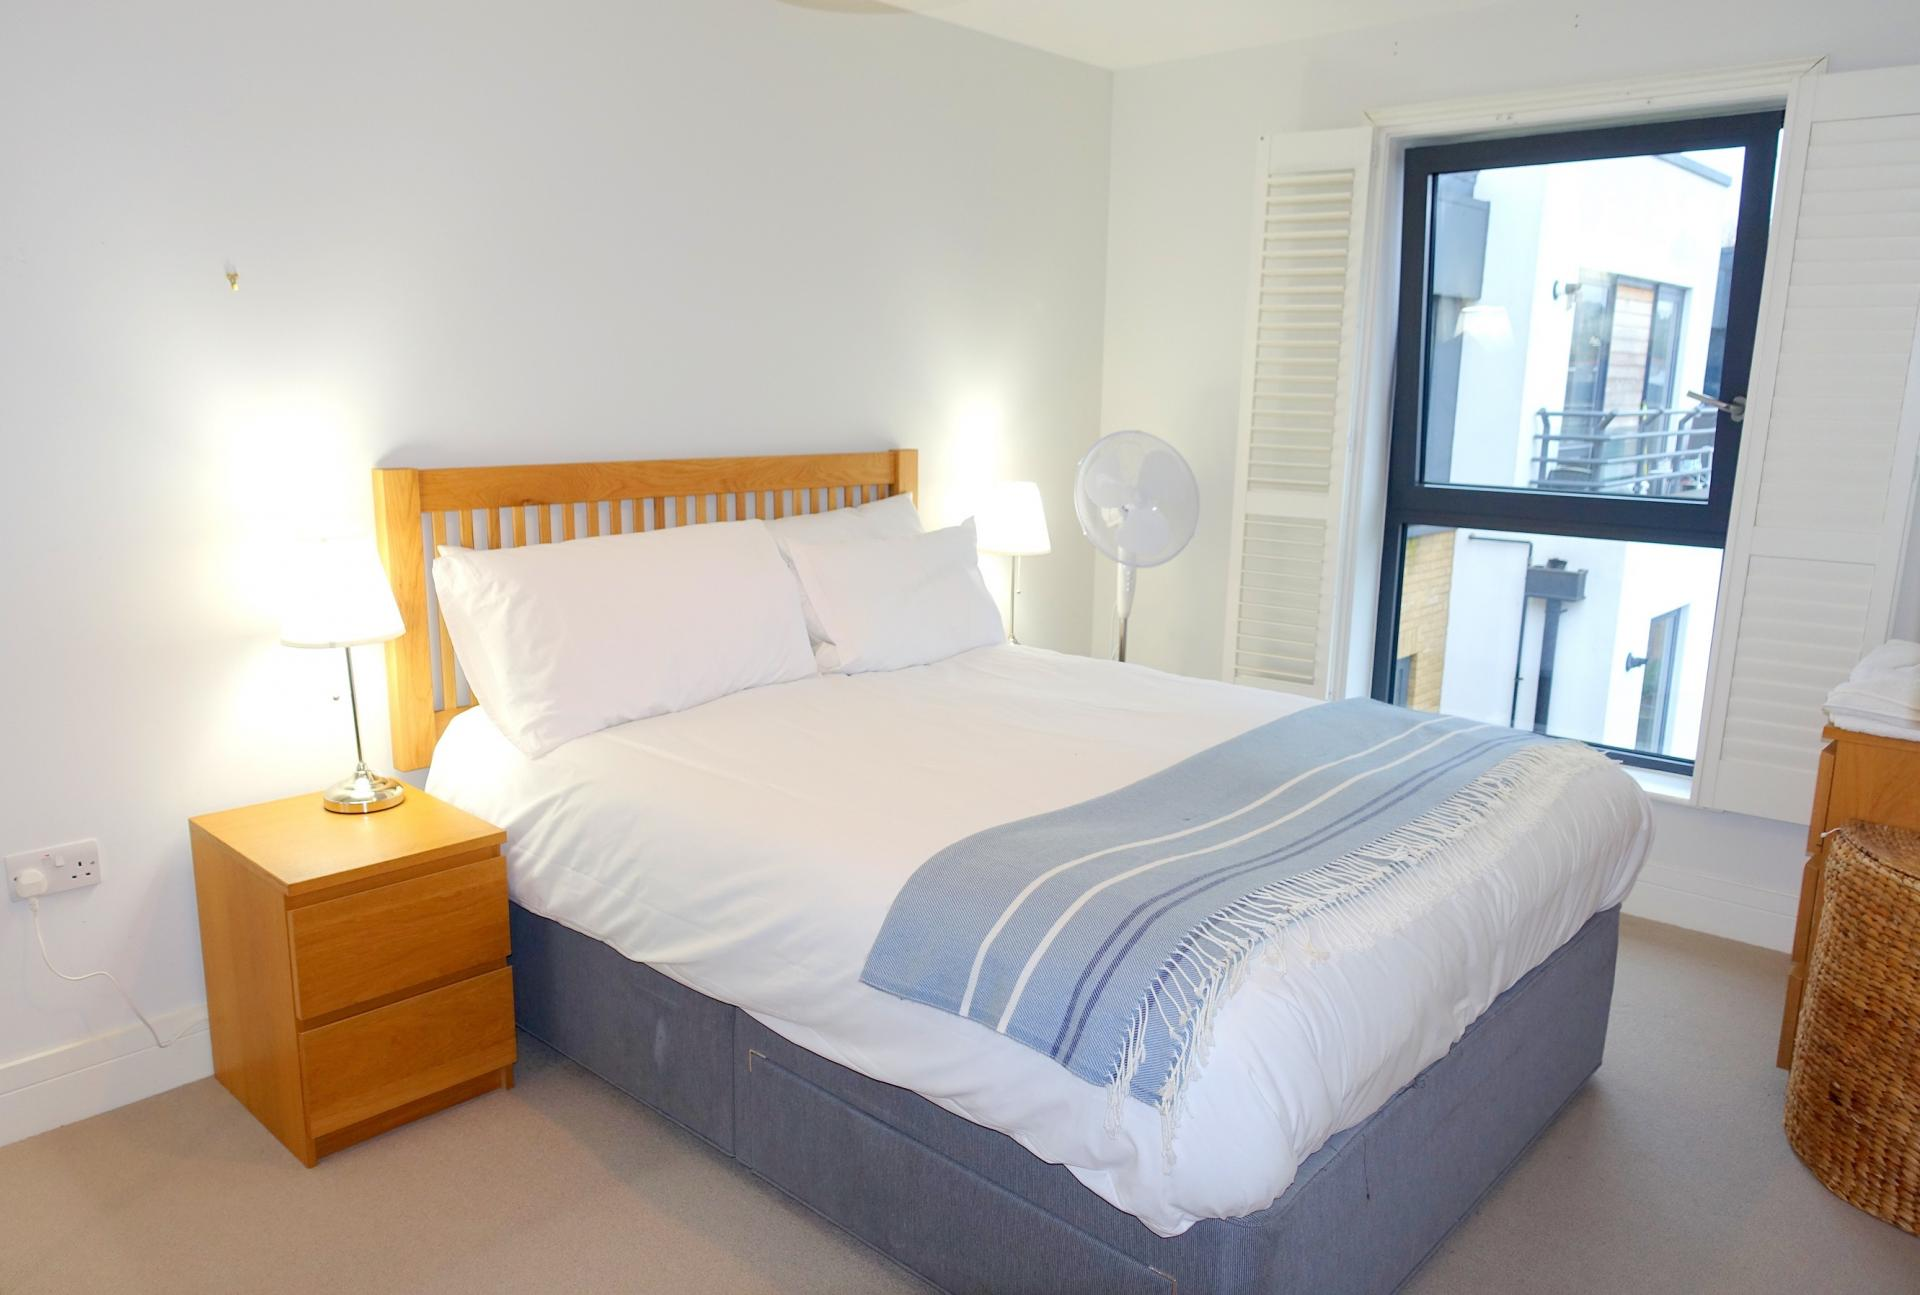 Bedroom at Teddington Apartments, Teddington, London - Citybase Apartments